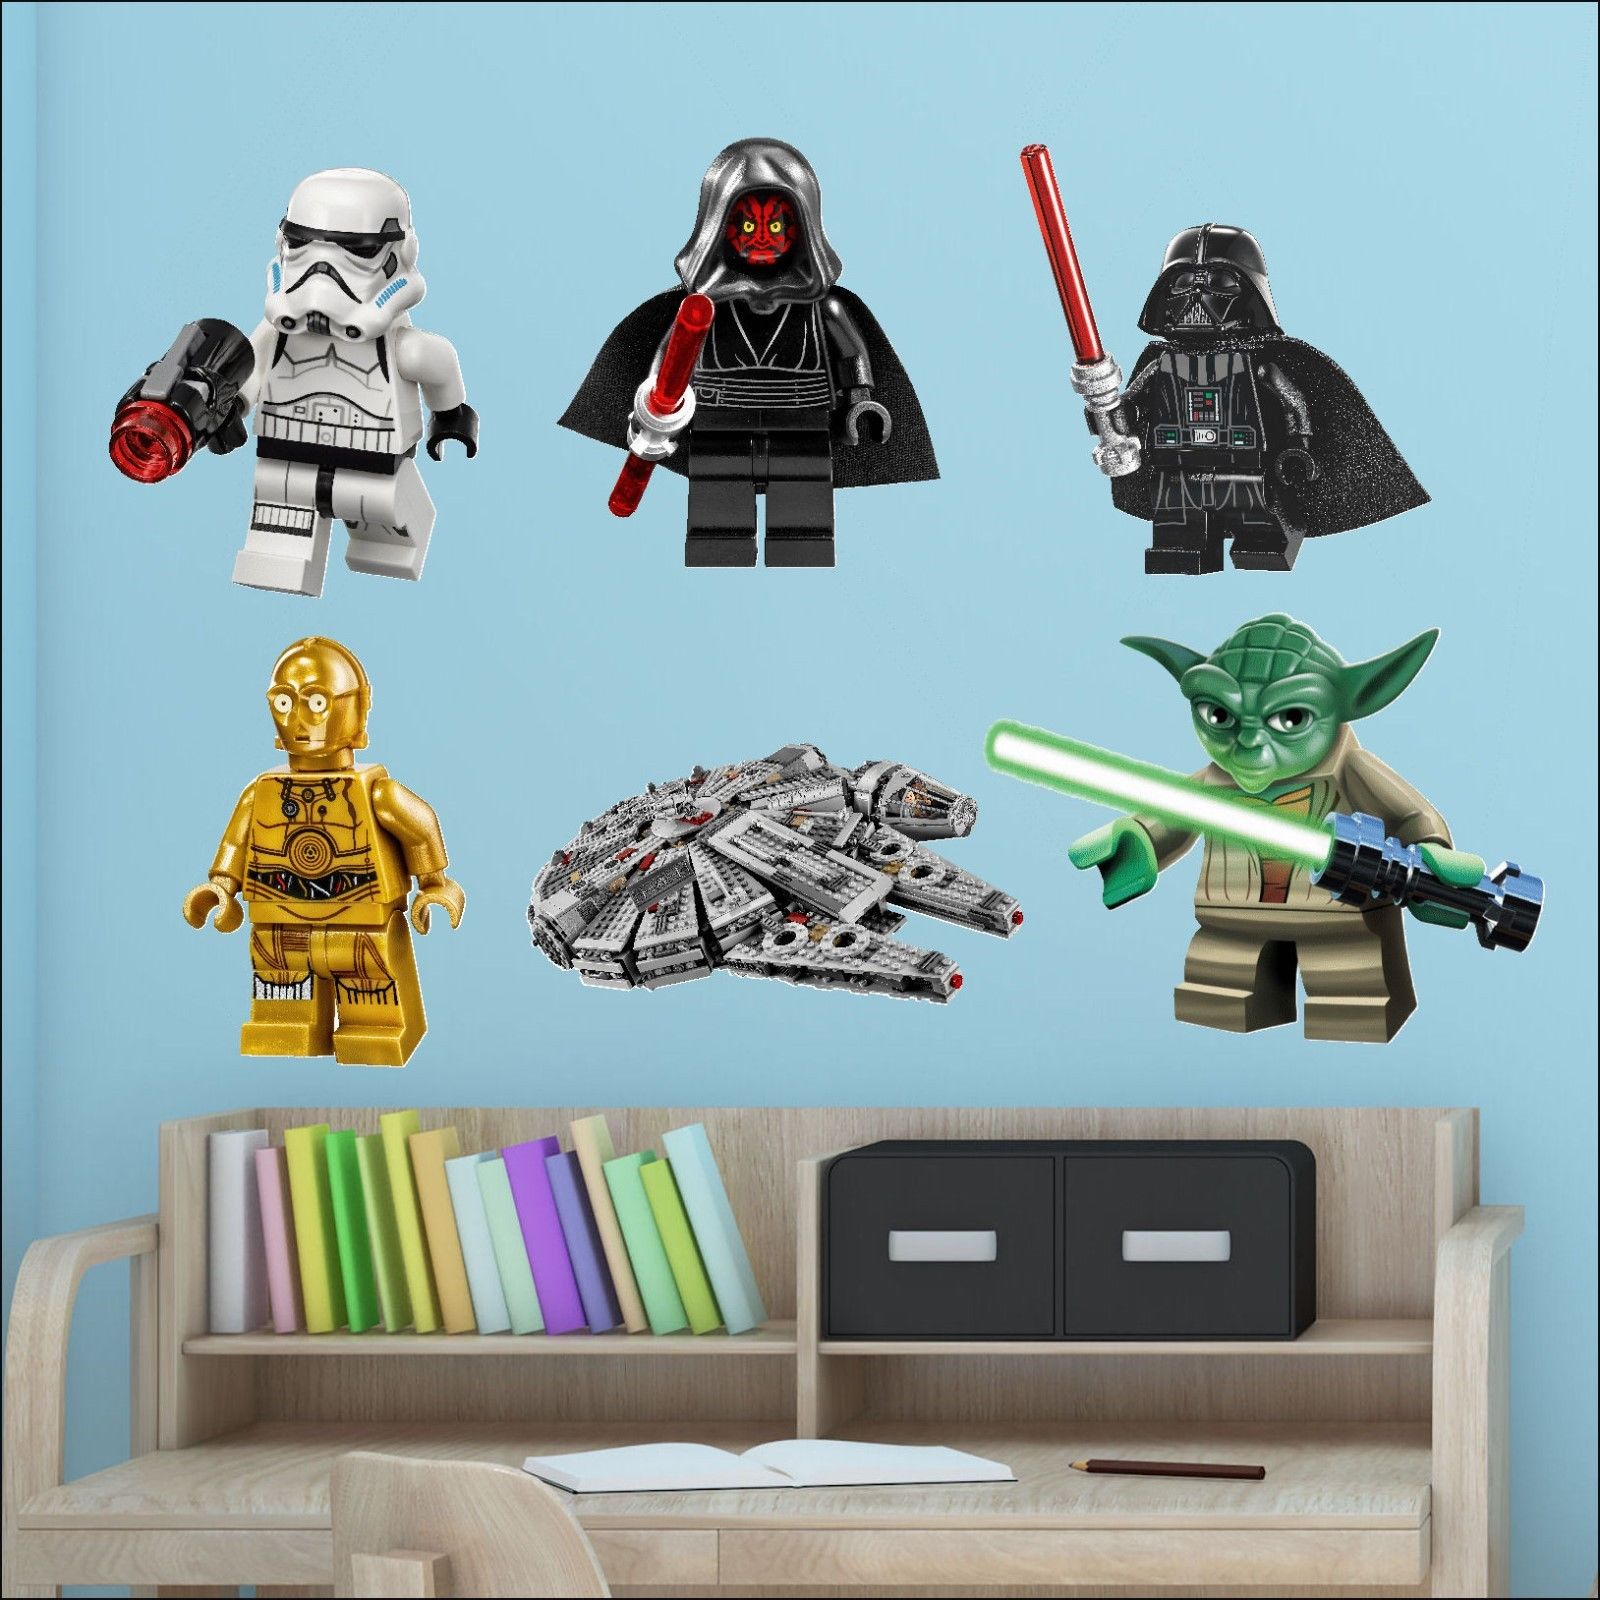 Wonderful Star Wars Lego Men Bedroom Full Colour Wall Sticker Transfer Individual Or  All 6. Teen ... Part 10